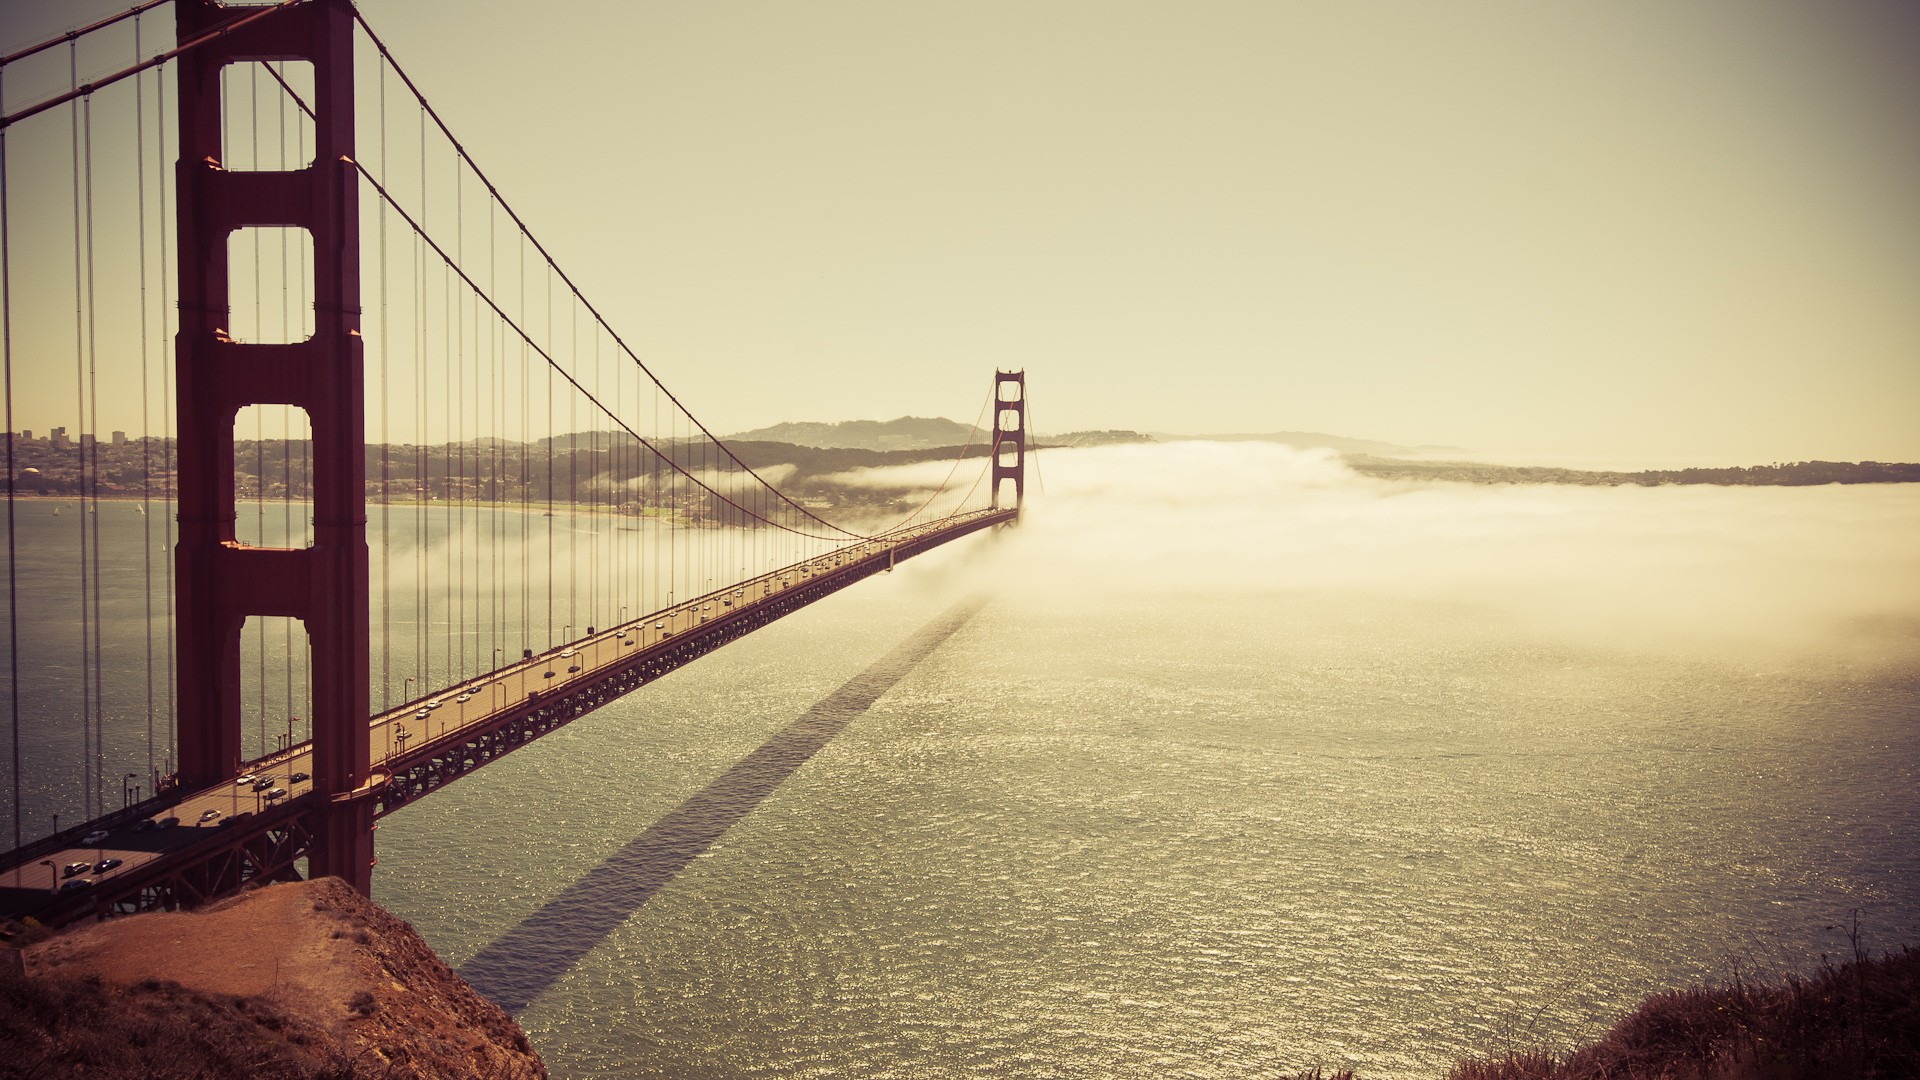 golden gate bridge wallpaper background